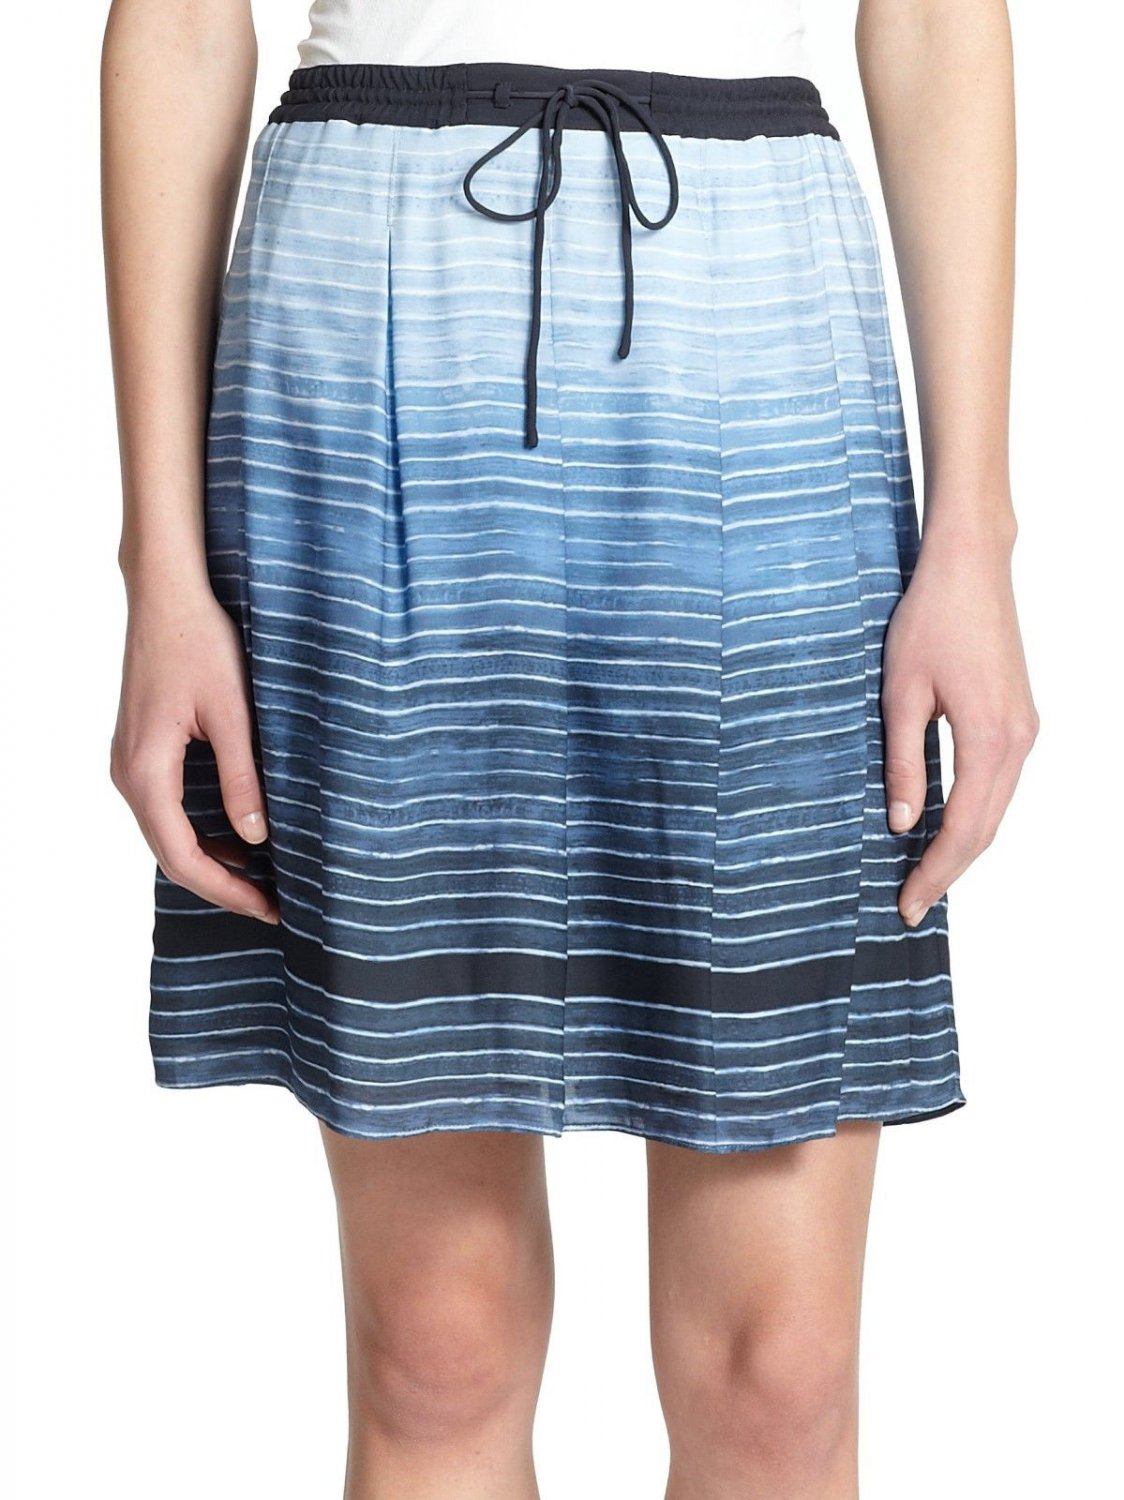 NWT VINCE XL skirt Ombre SILK in French Blue $275 striped mini pleated lined